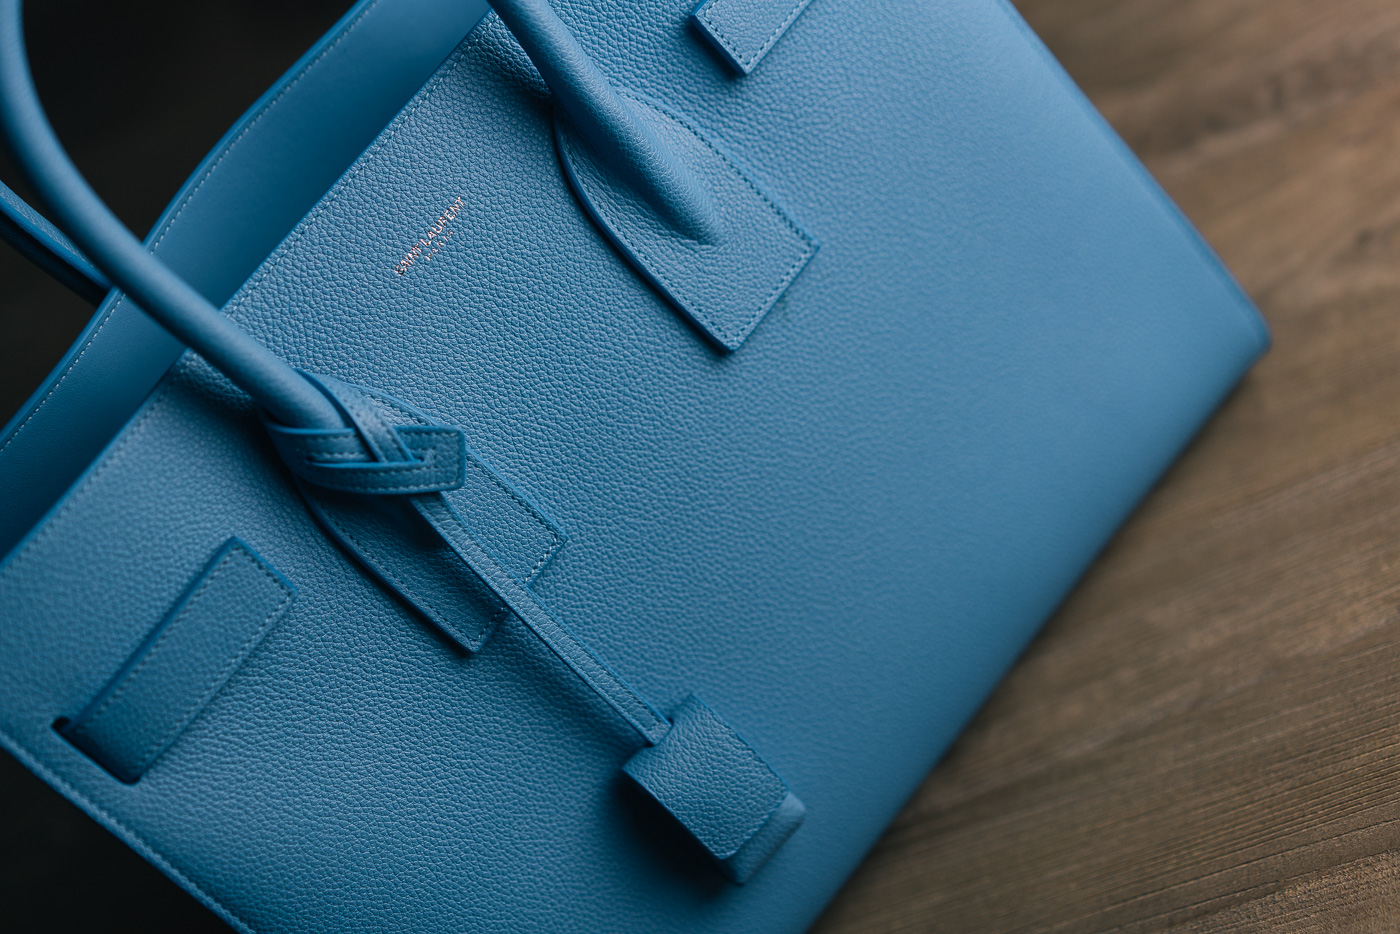 Saint Laurent Sac de Jour Light Blue (2)